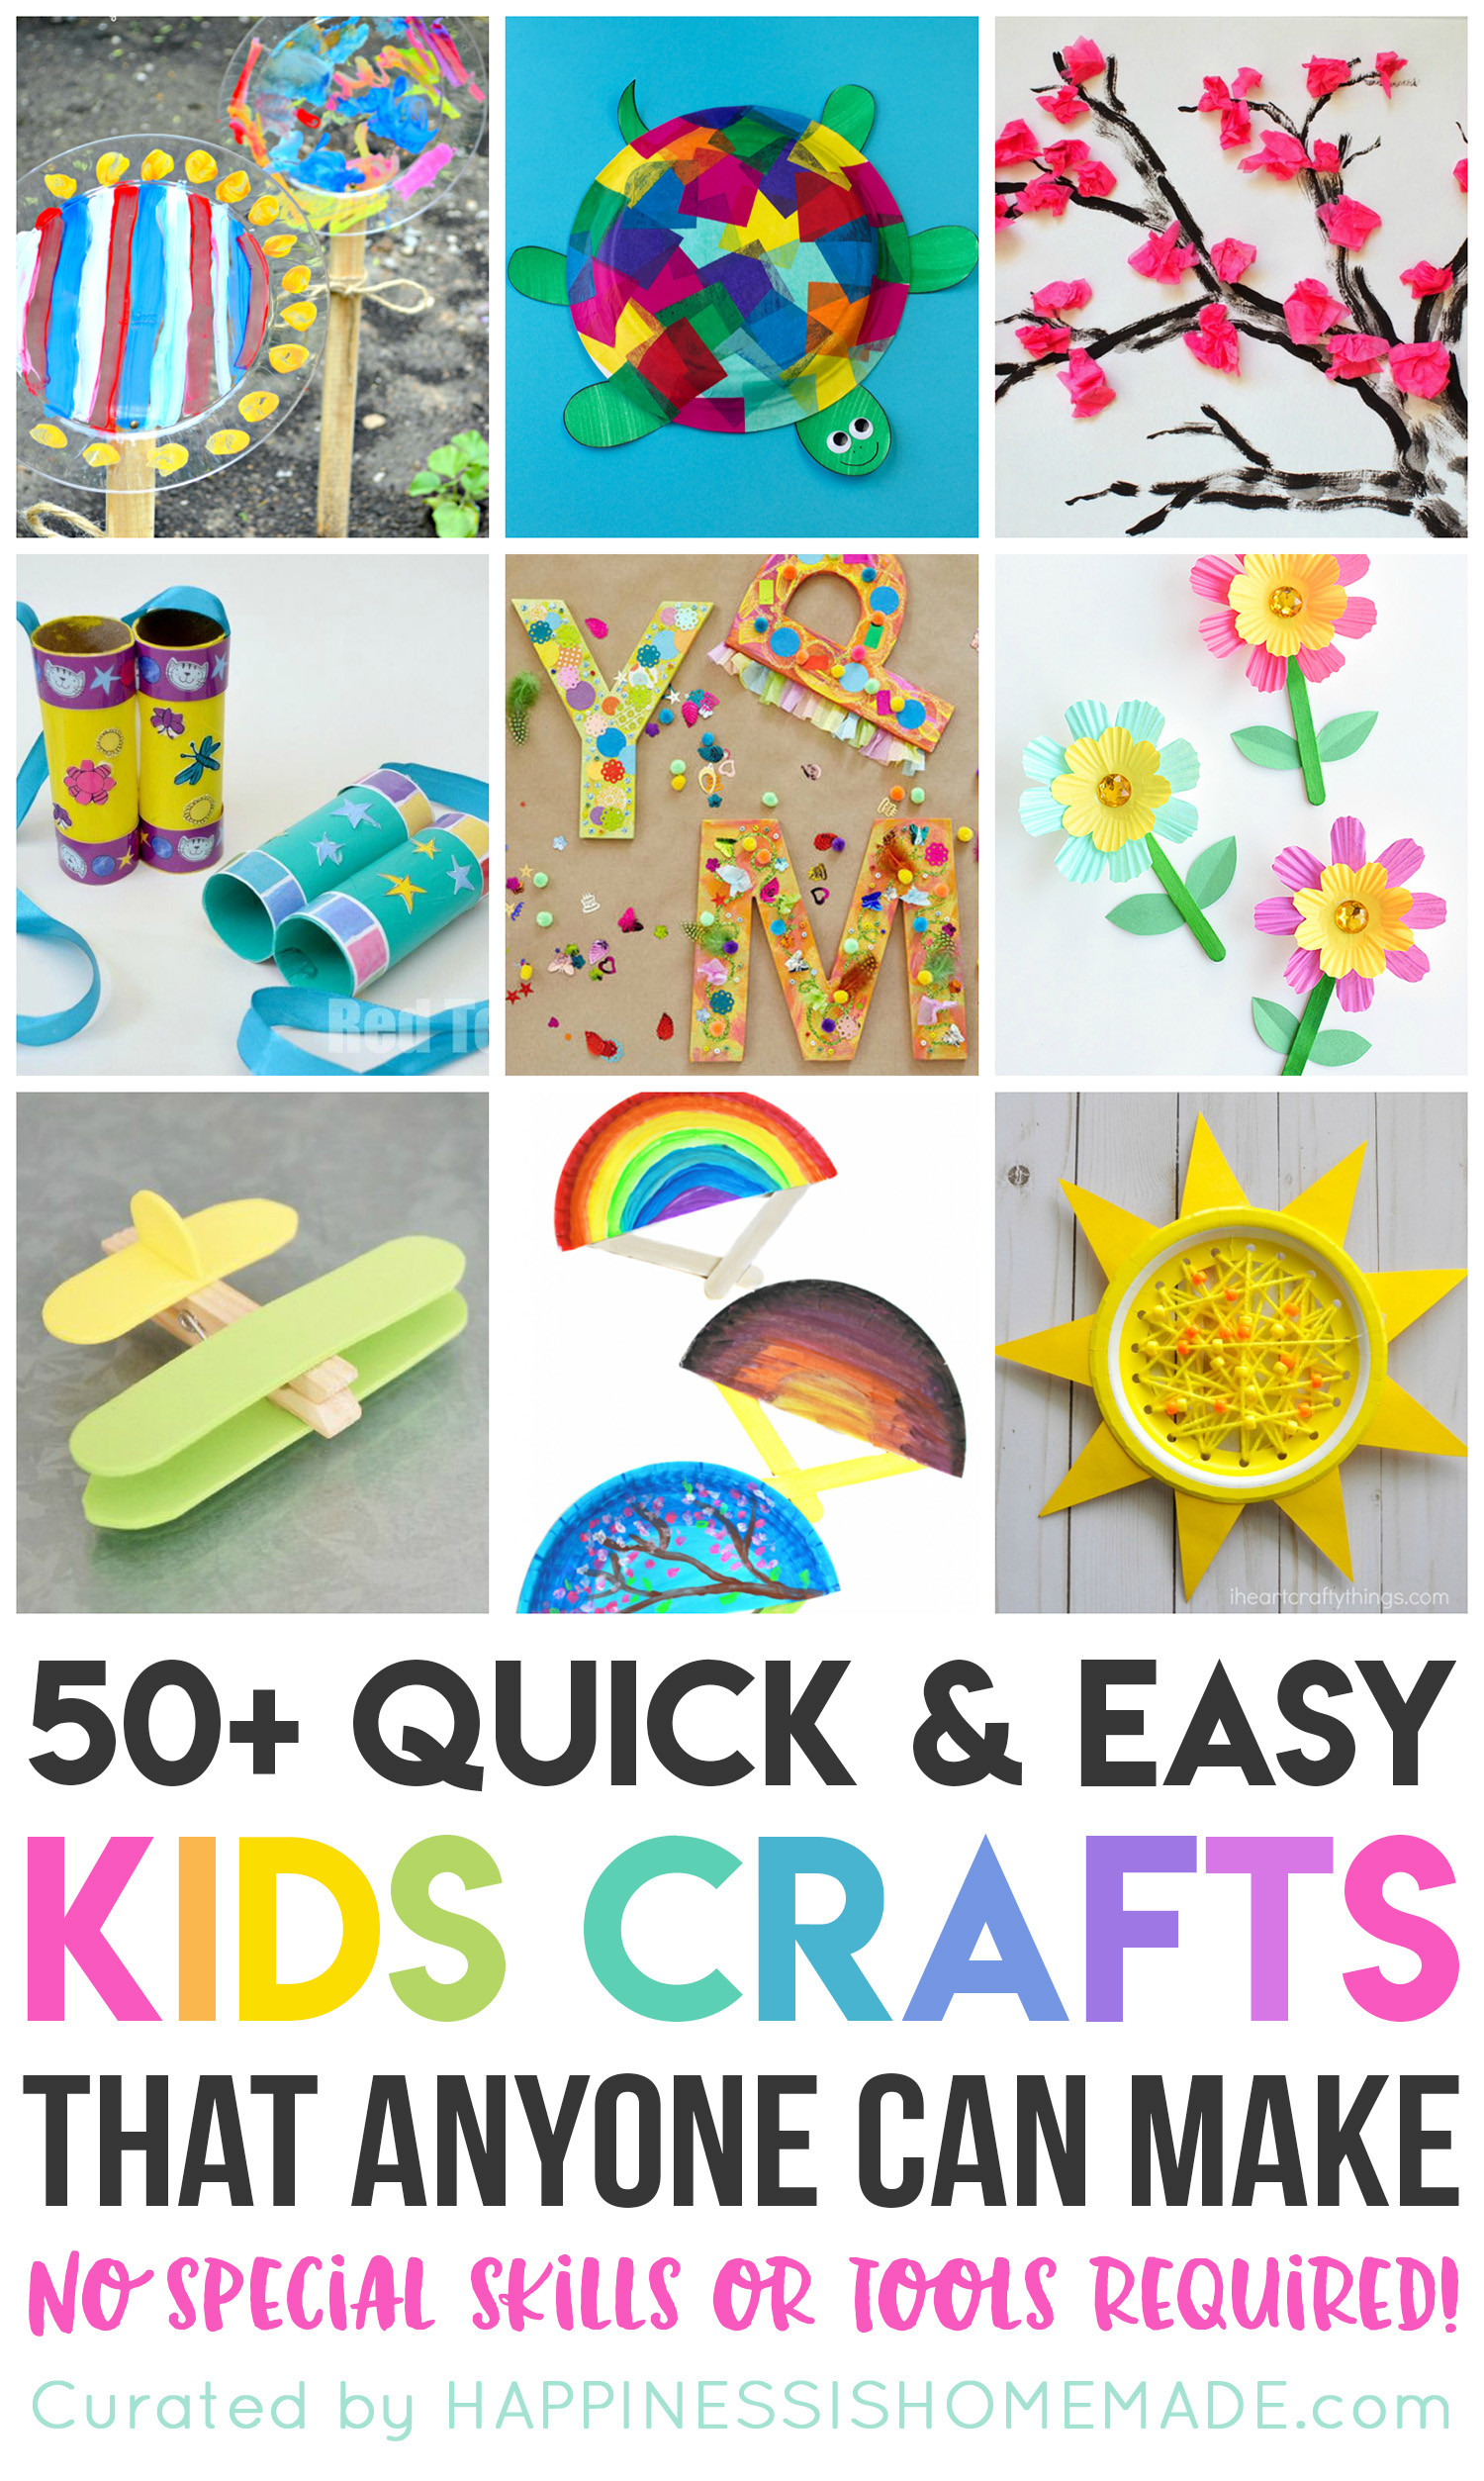 Best ideas about Simple Craft Ideas . Save or Pin Quick & Easy Halloween Crafts for Kids Happiness is Homemade Now.